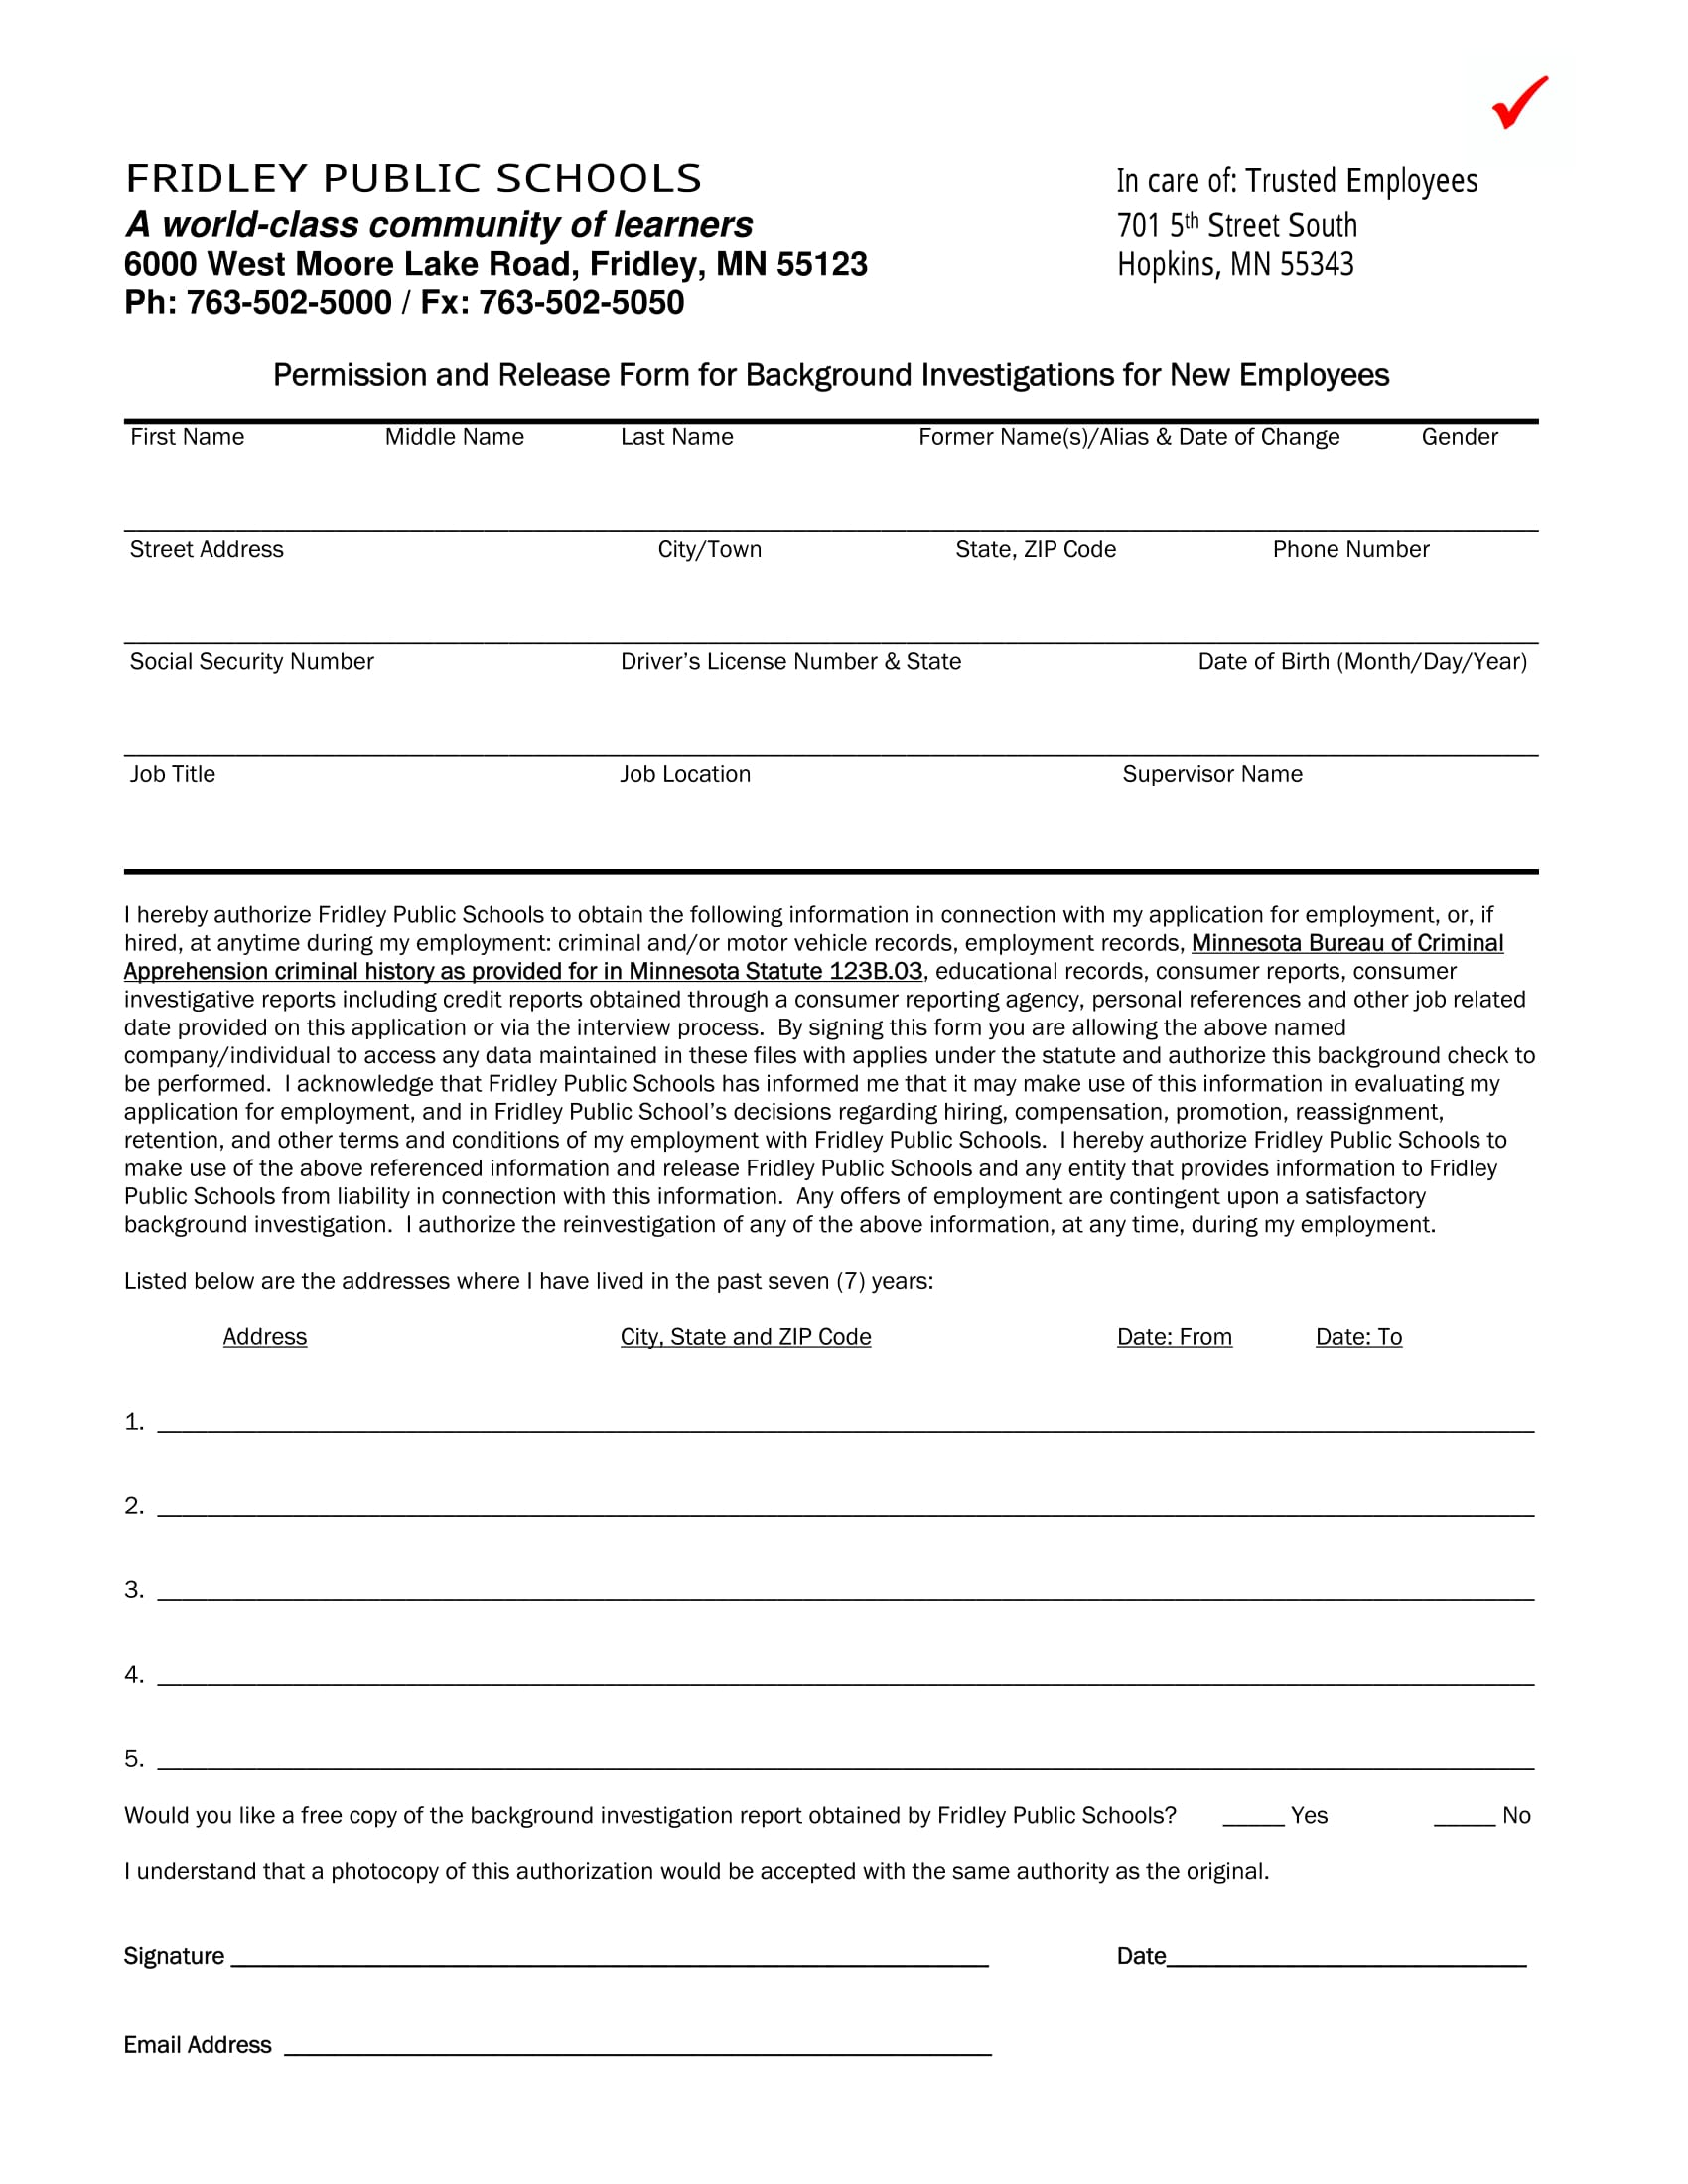 background check information form 2